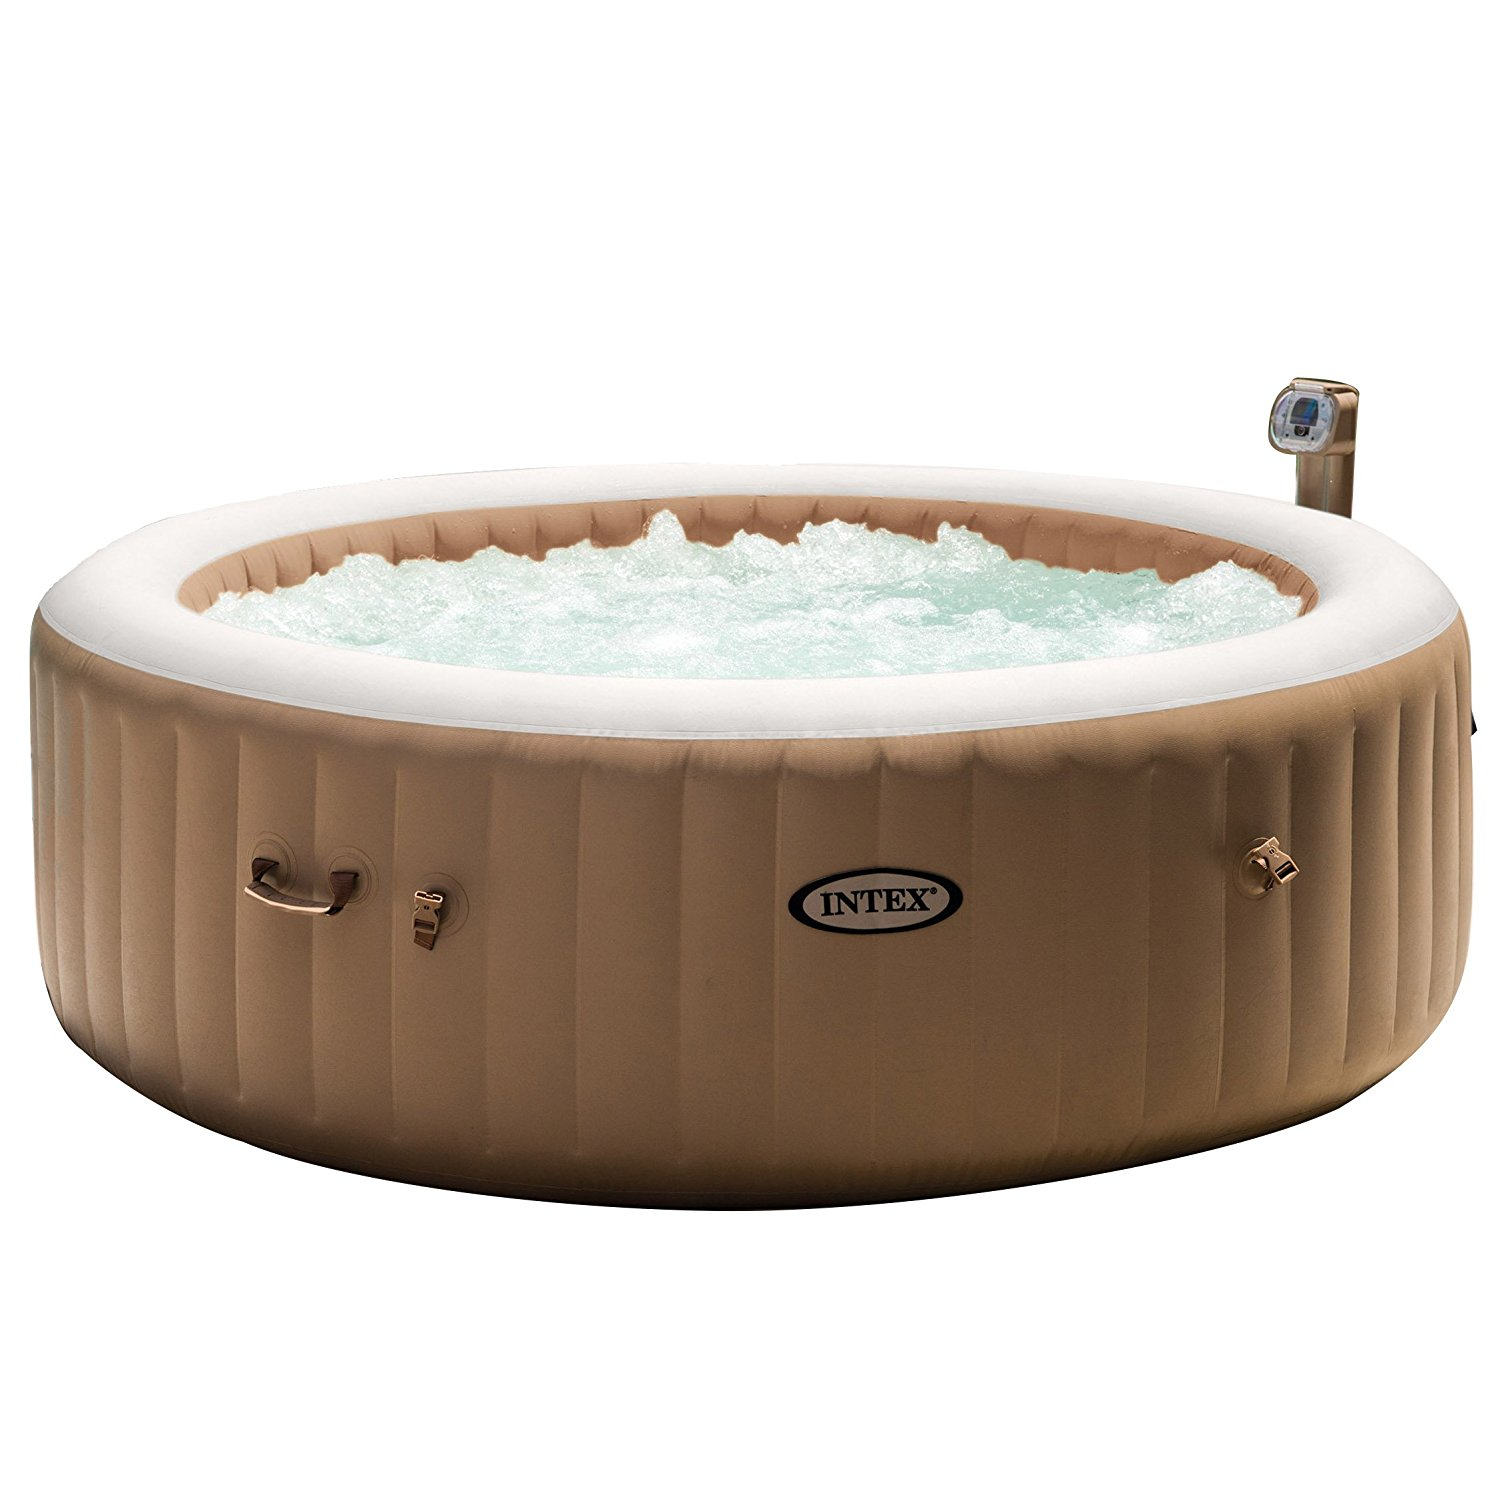 Best Hot Tub Brands for 2018